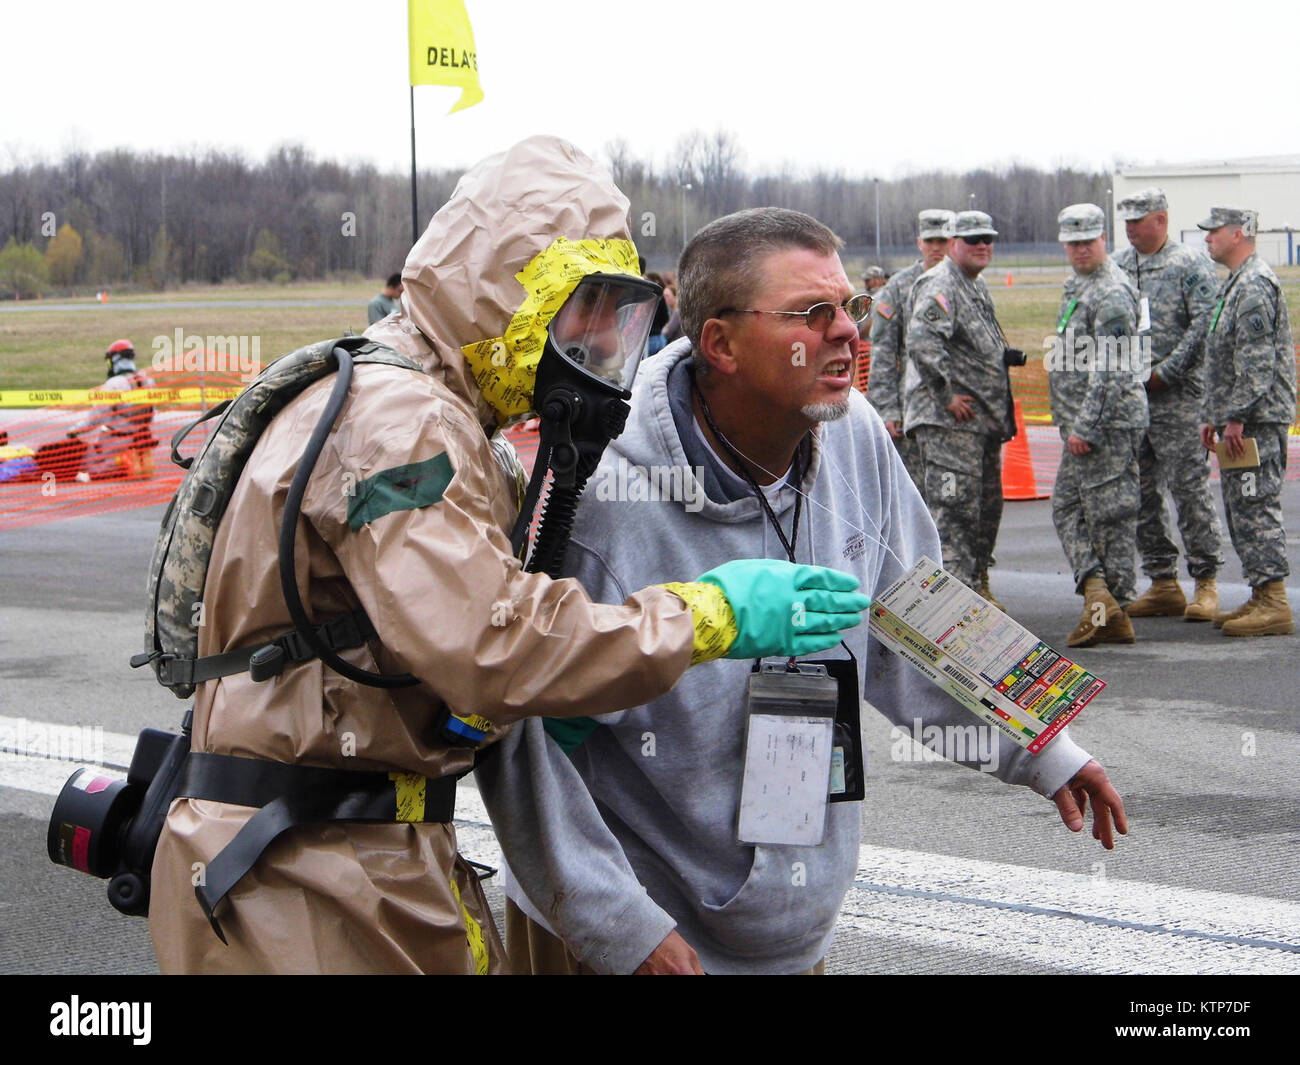 ORISKANY, N.Y. -- A soldier from the decontamination team from the 2nd Squadron, 101 Cavalry, New York Army National Stock Photo